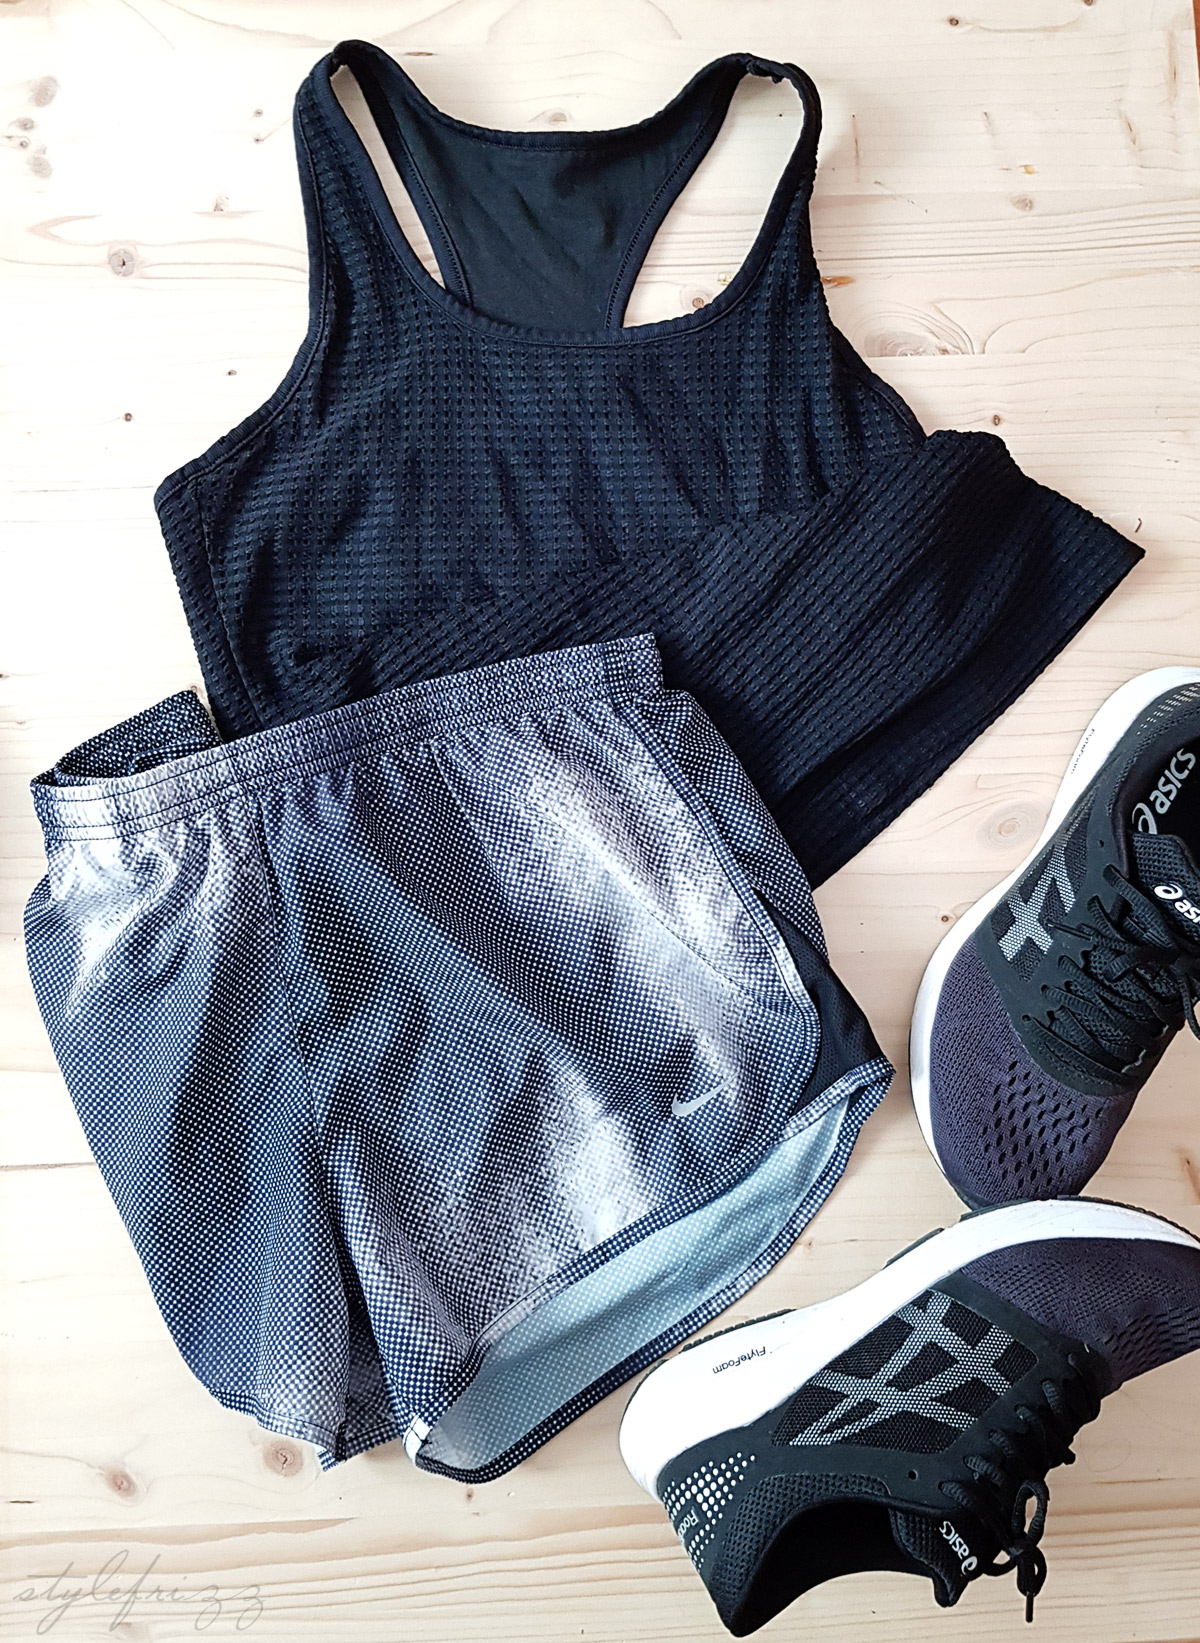 stylish running outfit